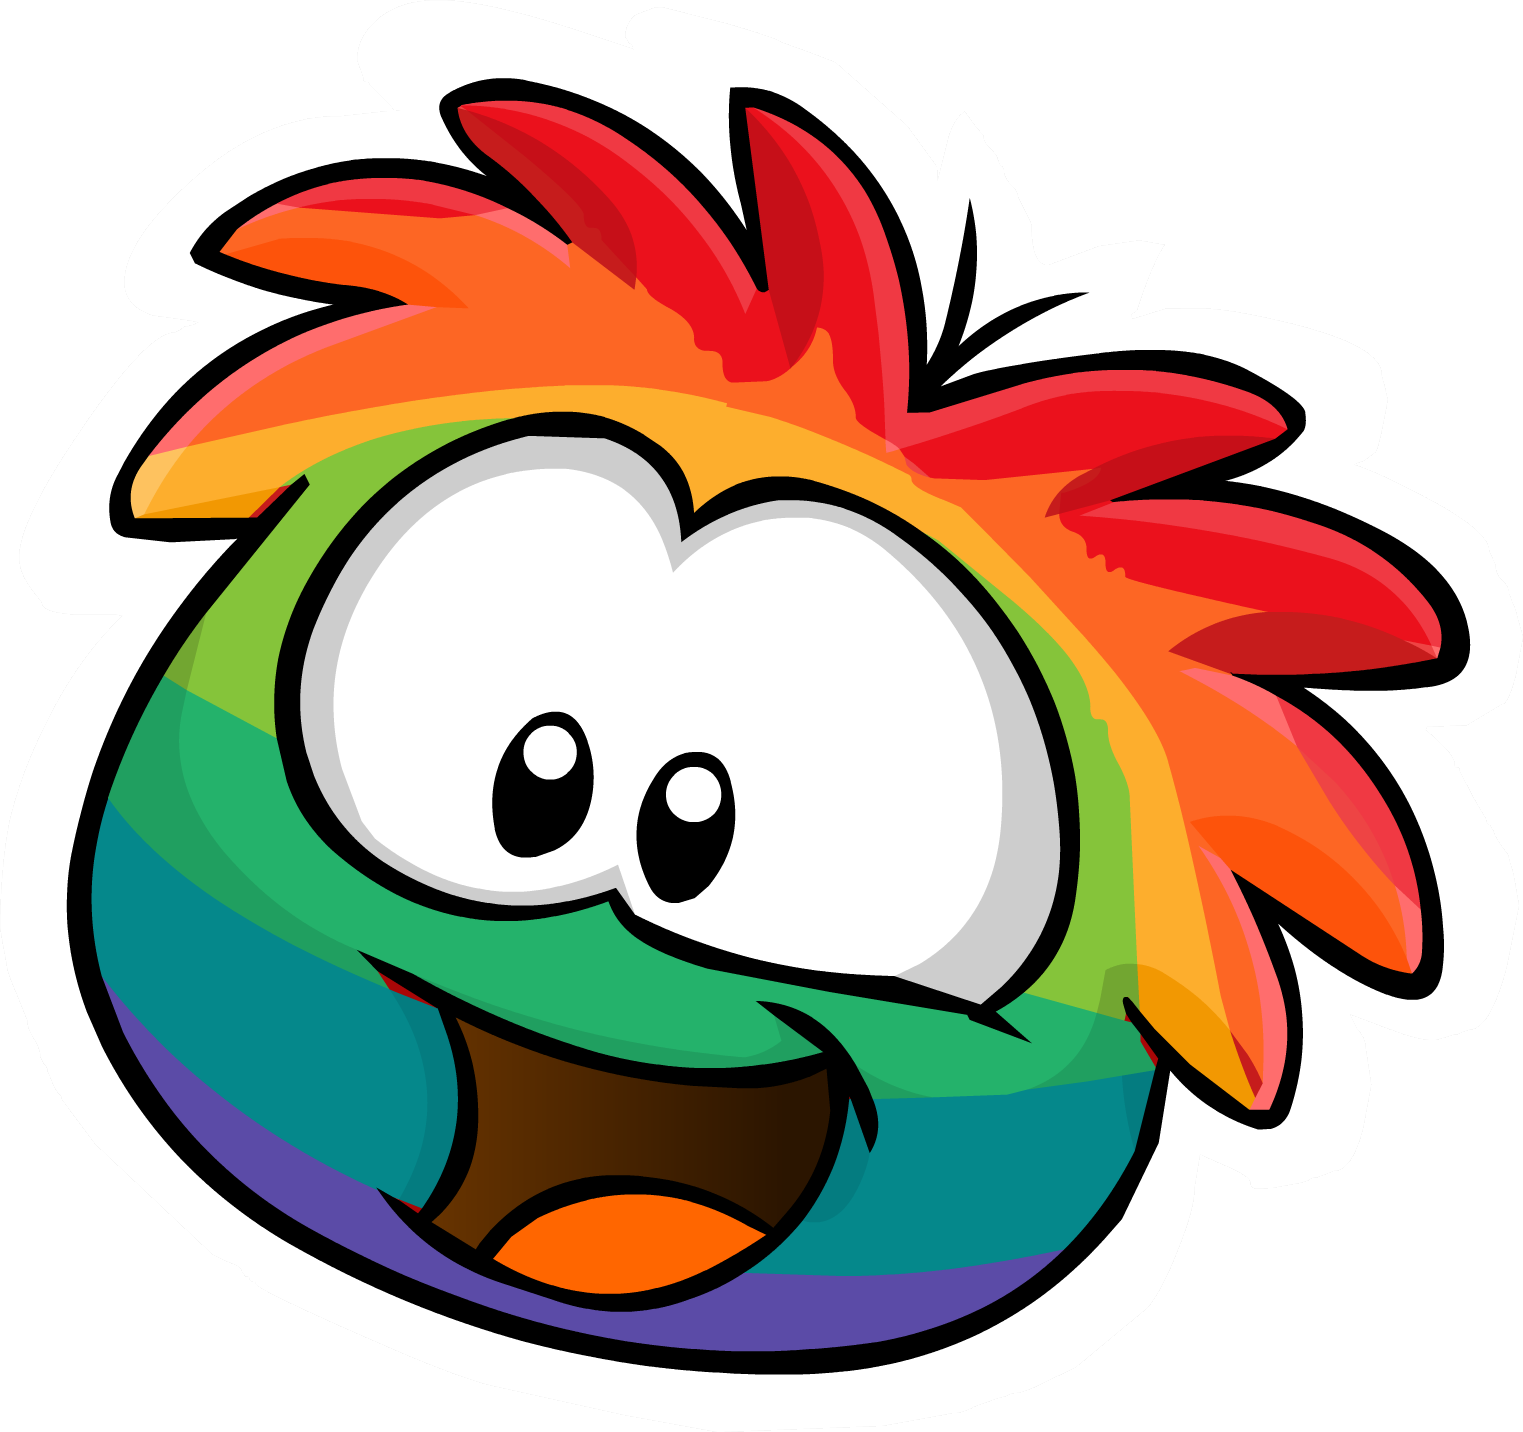 type pin member item no party puffle party 2013 cost free where found